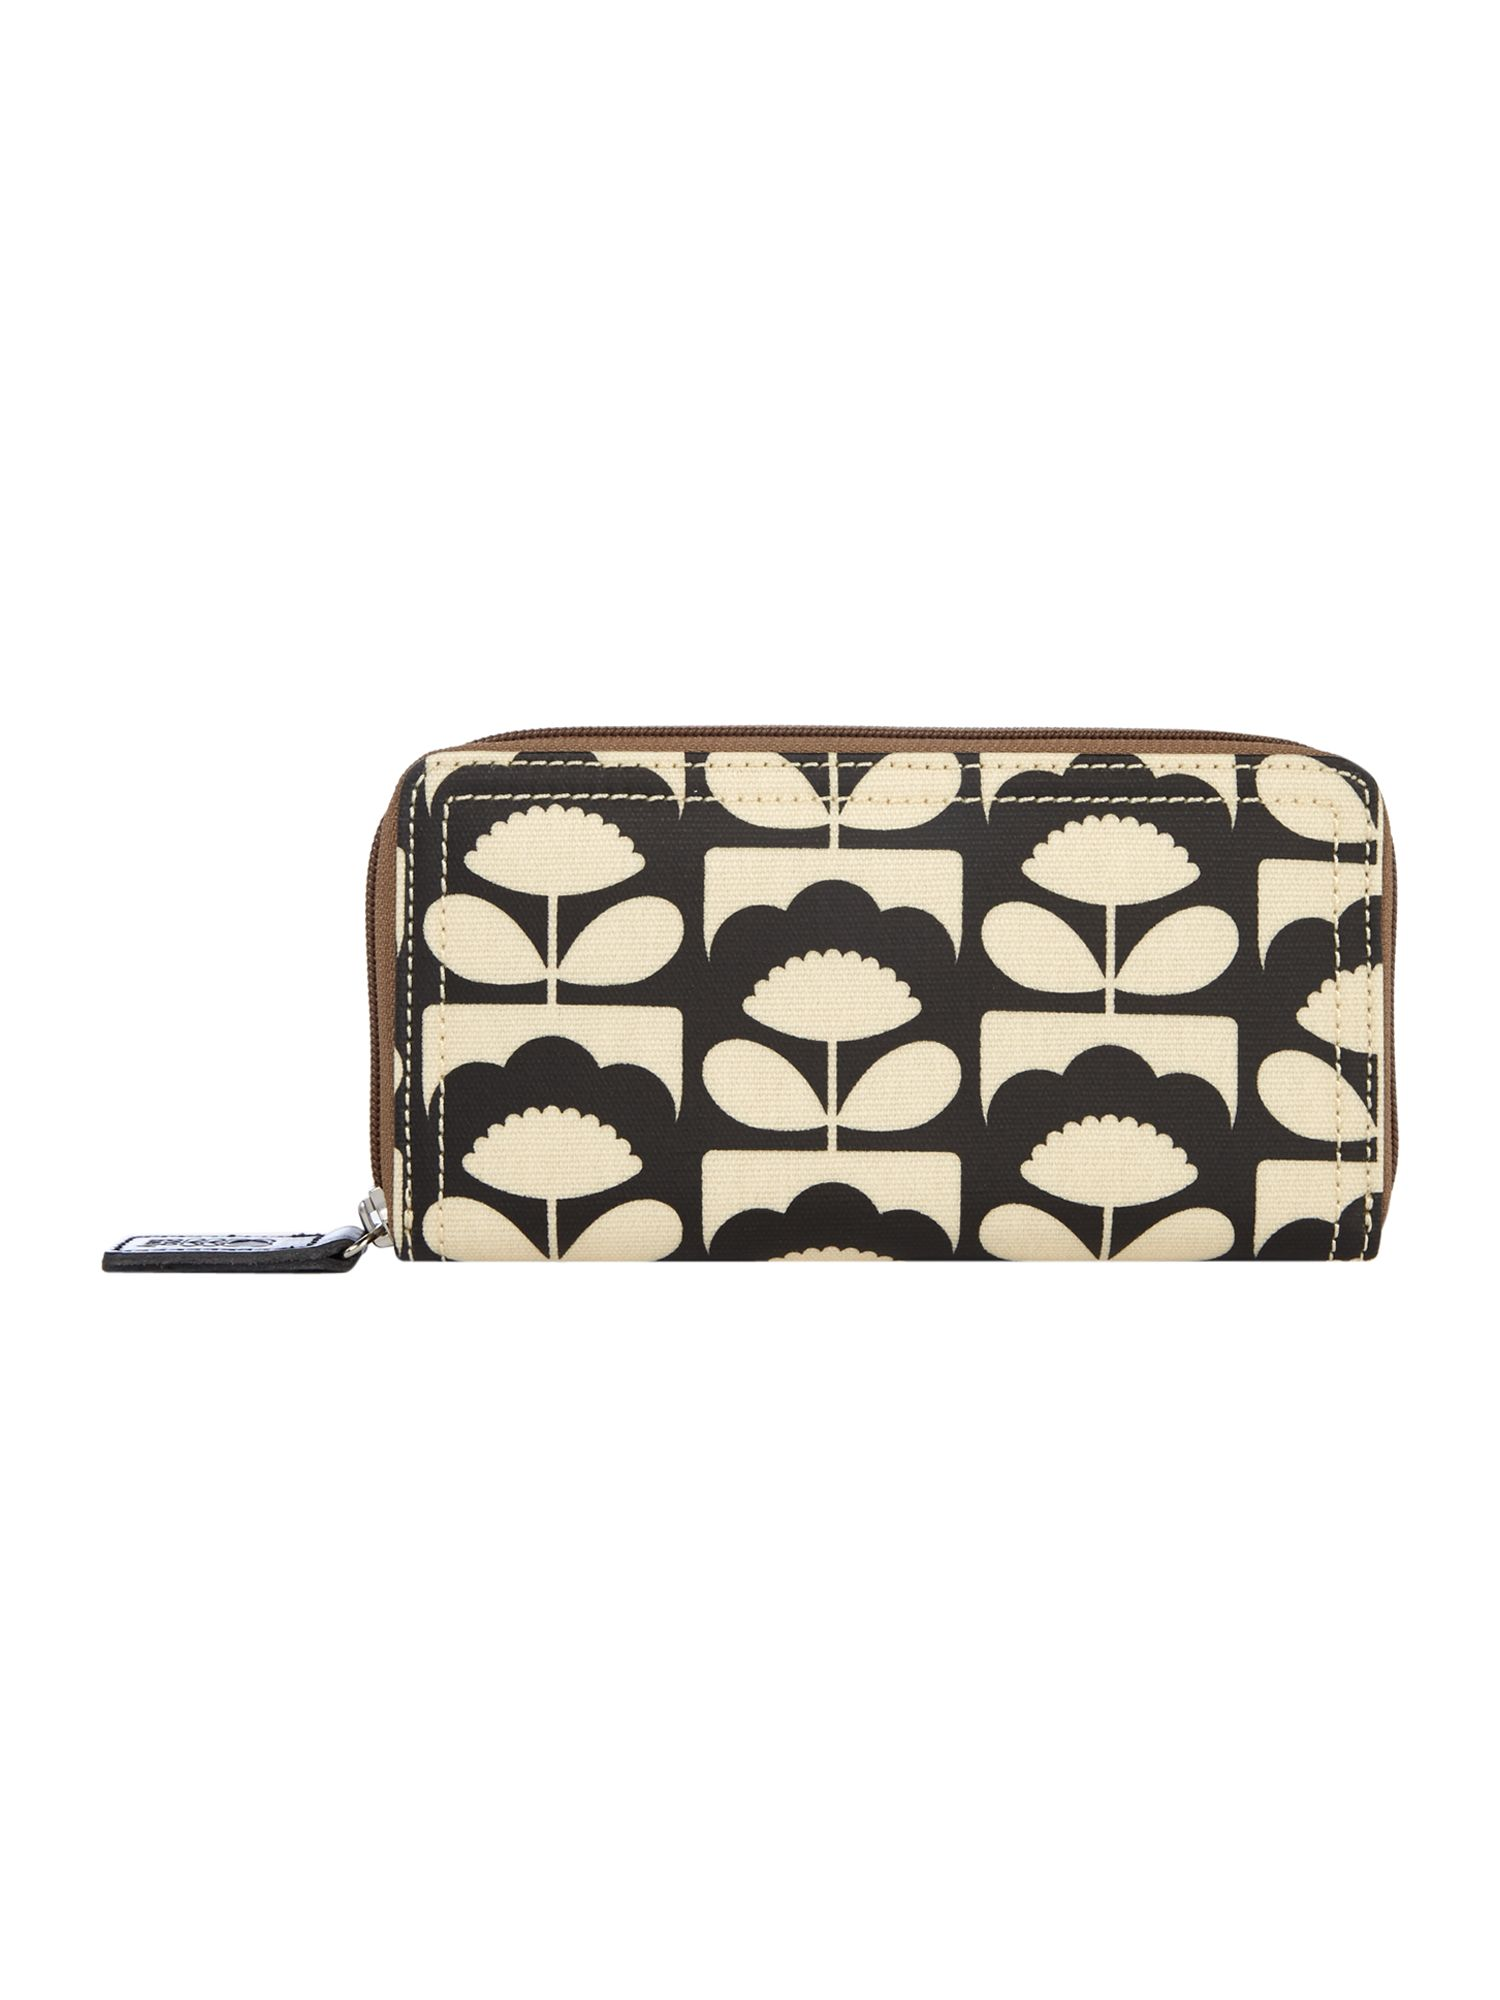 Orla Kiely Big Zip Wallet, Charcoal